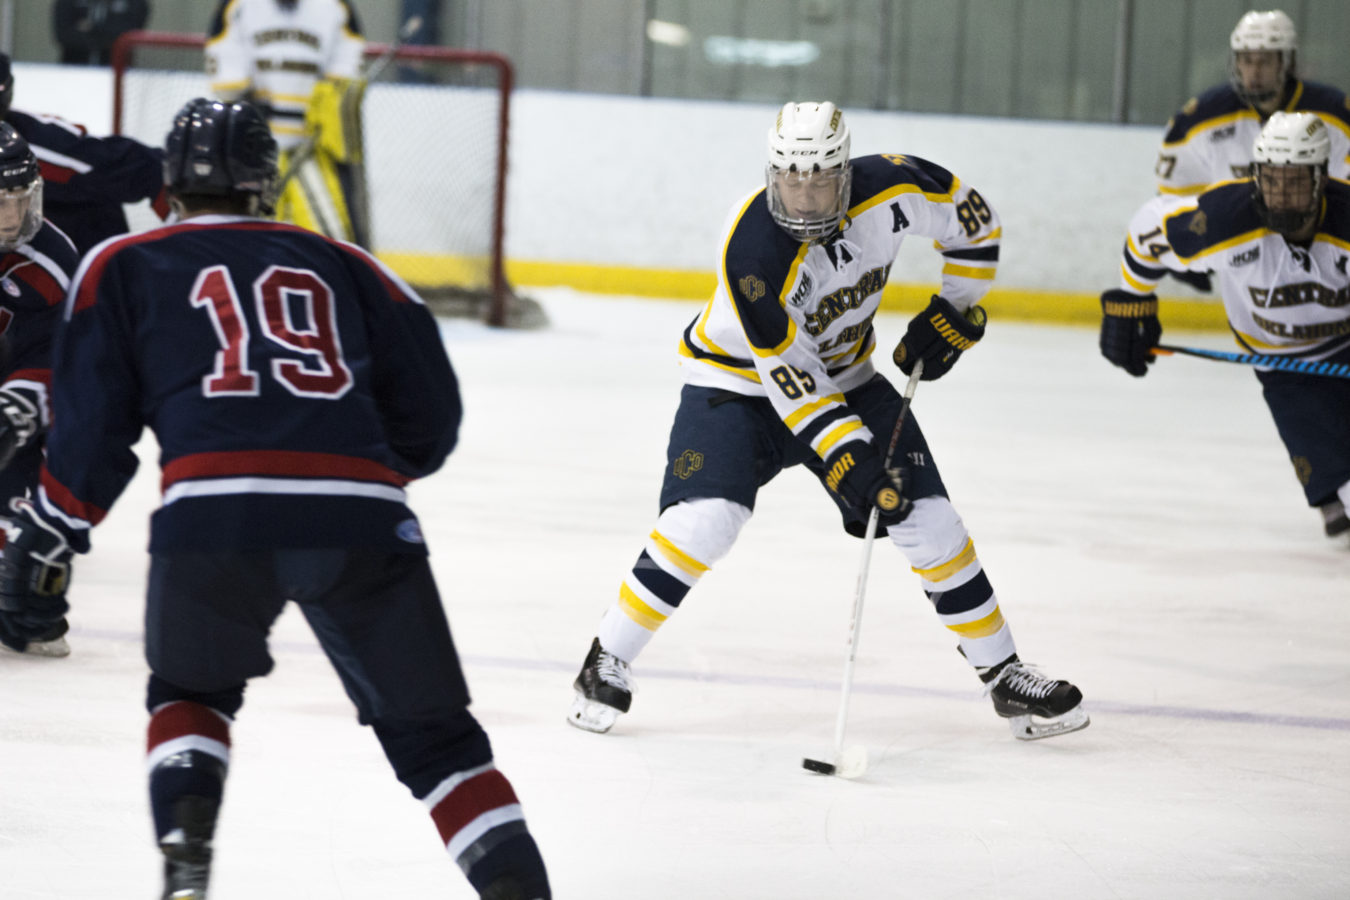 UCO Hockey: Bronchos Get Series Sweep Over Weekend